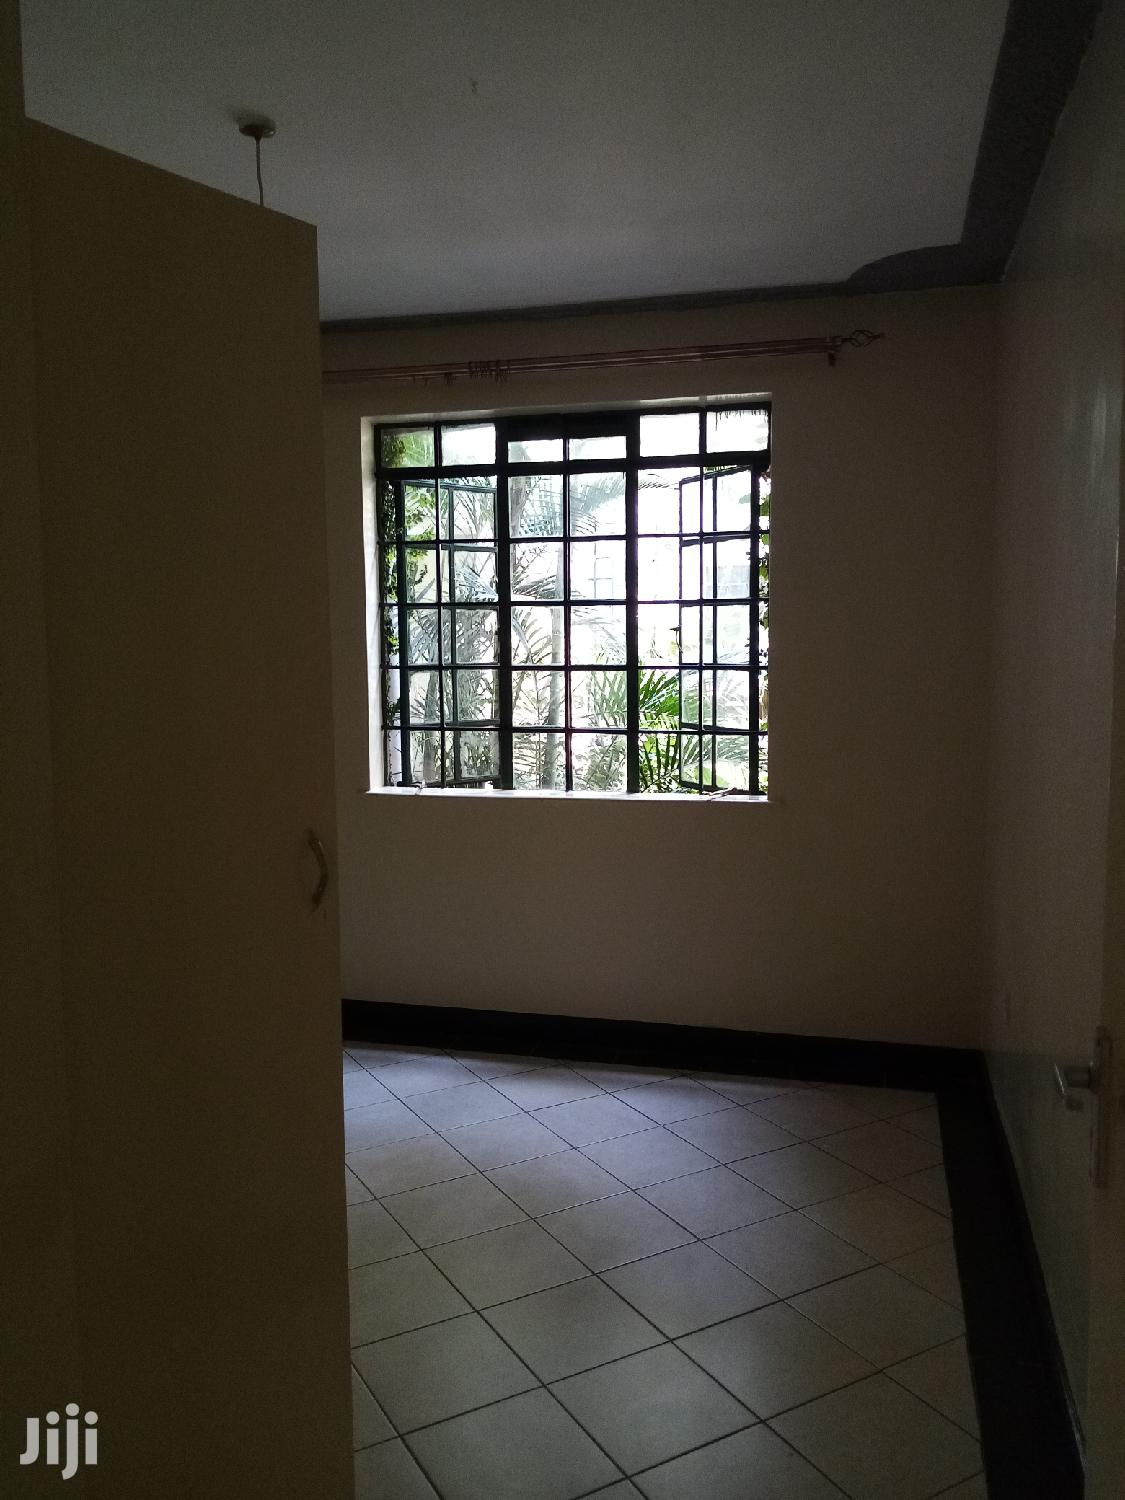 Property World, 1br Apartment With Borehole and Very Secure | Houses & Apartments For Rent for sale in Maziwa, Lavington, Kenya